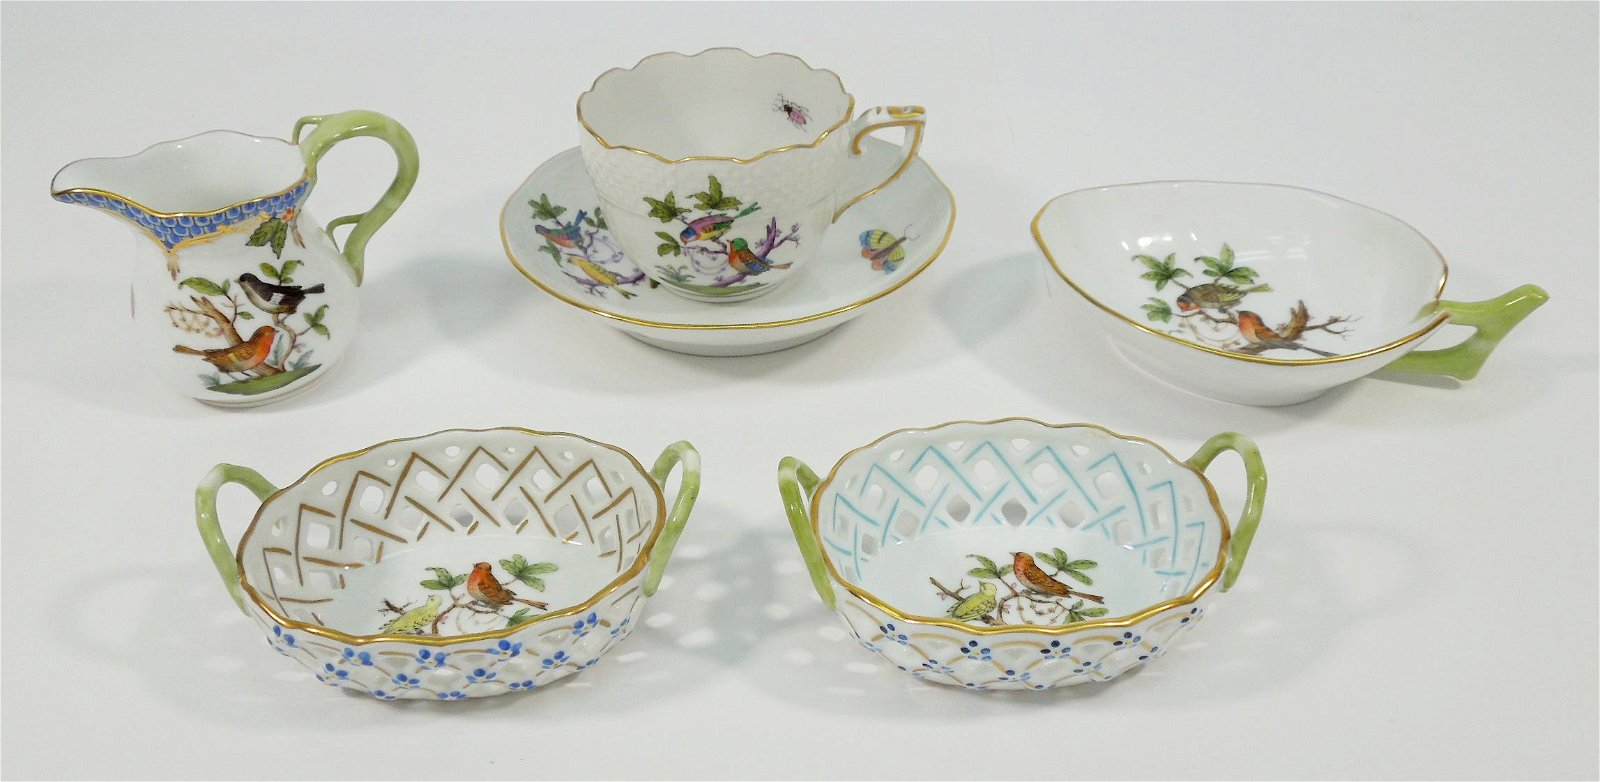 Group of (6) Herend Rothschild Bird Tableware Items.